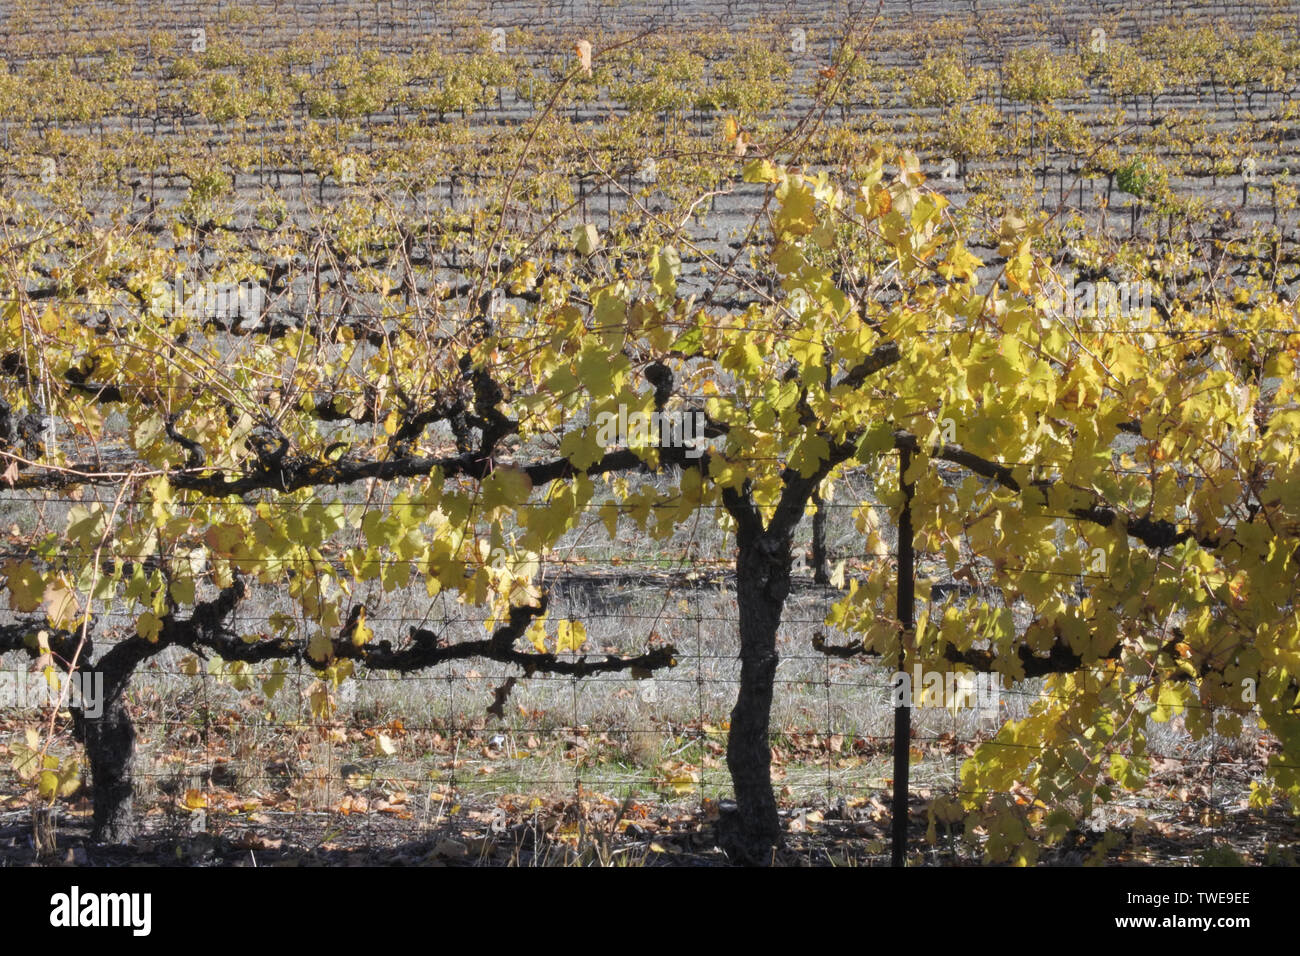 Vneyard in Clare valley. Clare Valley is a renowned wine-producing region northeast of Adelaide in South Australia. Stock Photo